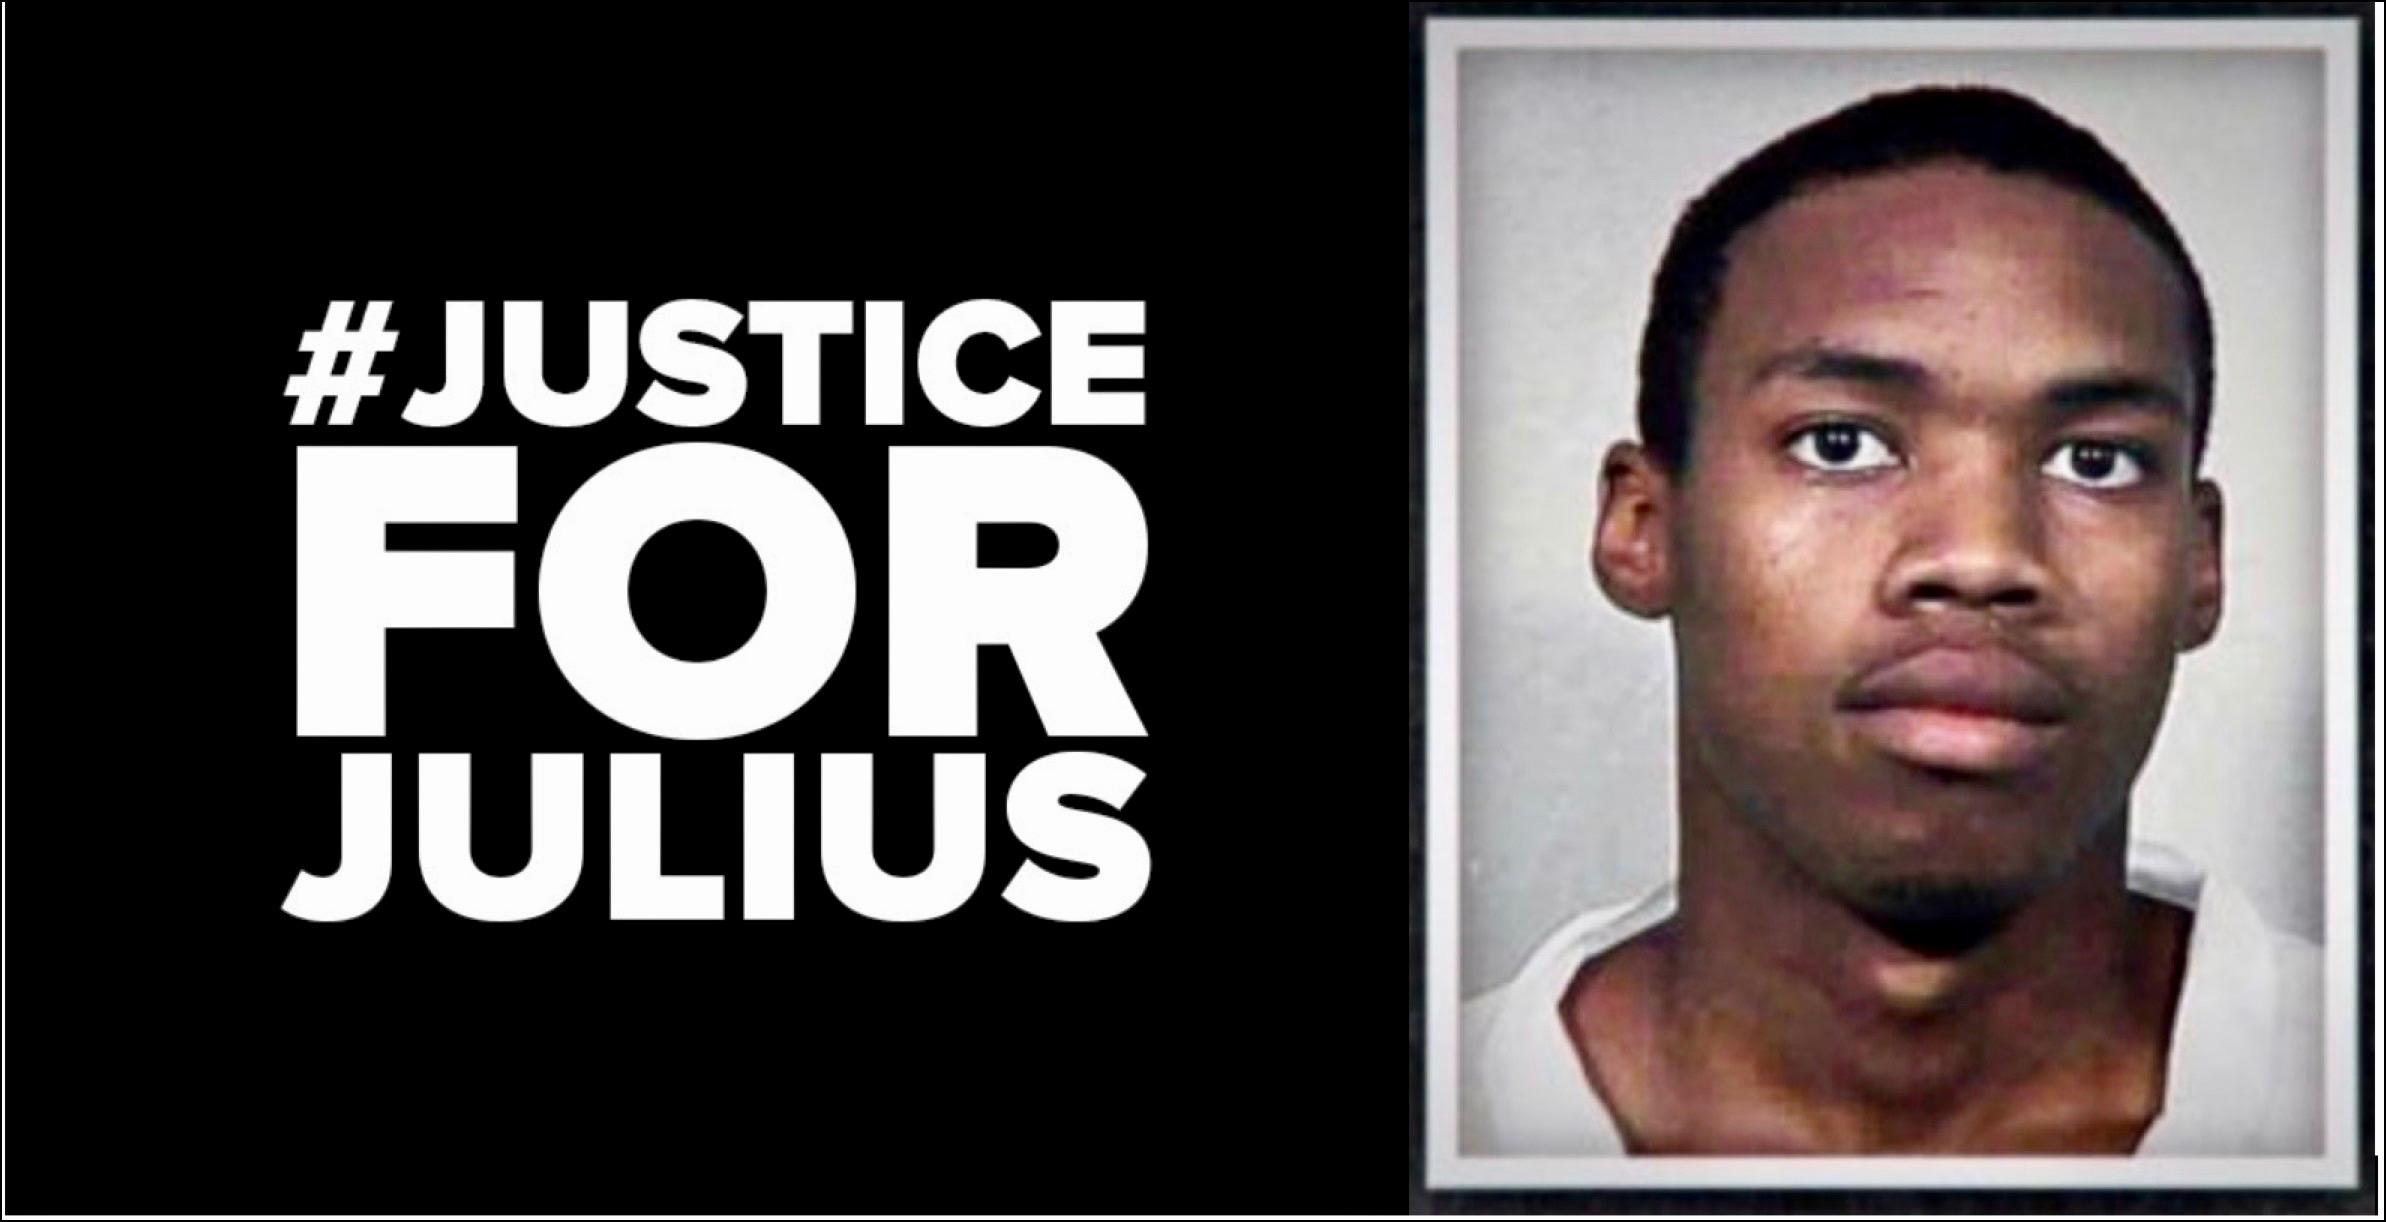 Justice for Julius with photo 2Aug2020 5